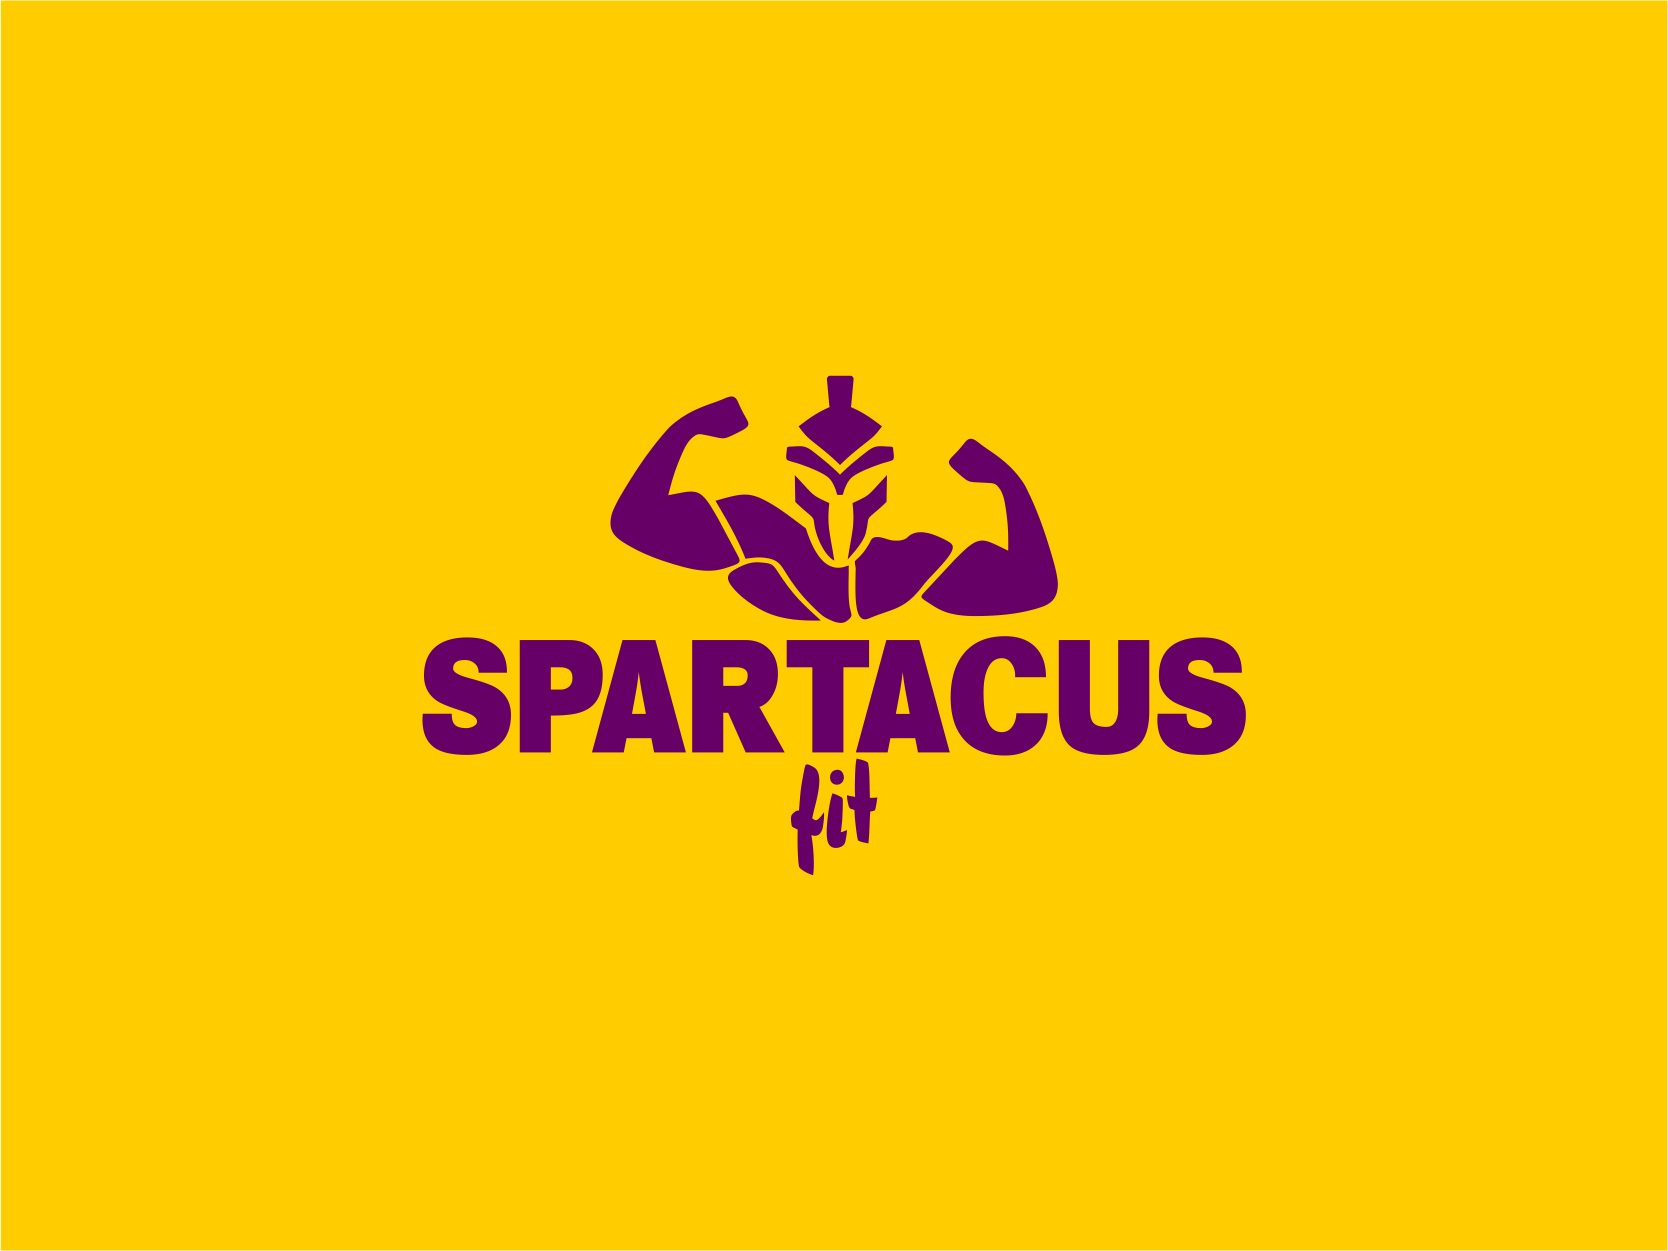 Spartacus Fit